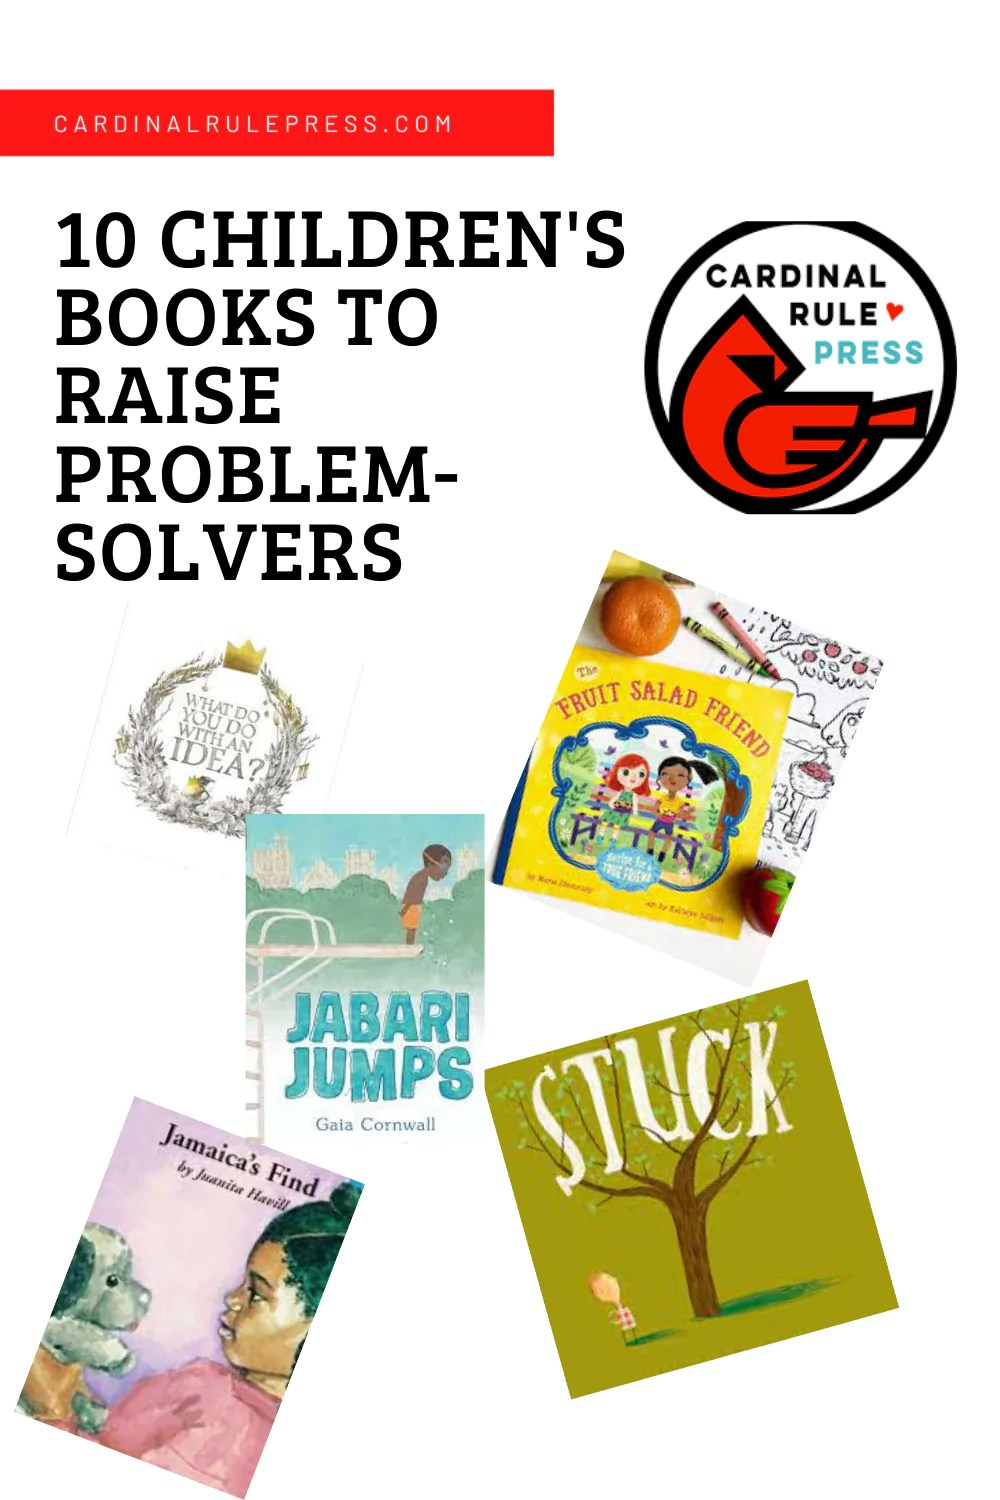 Children's Books To Raise Problem-Solvers